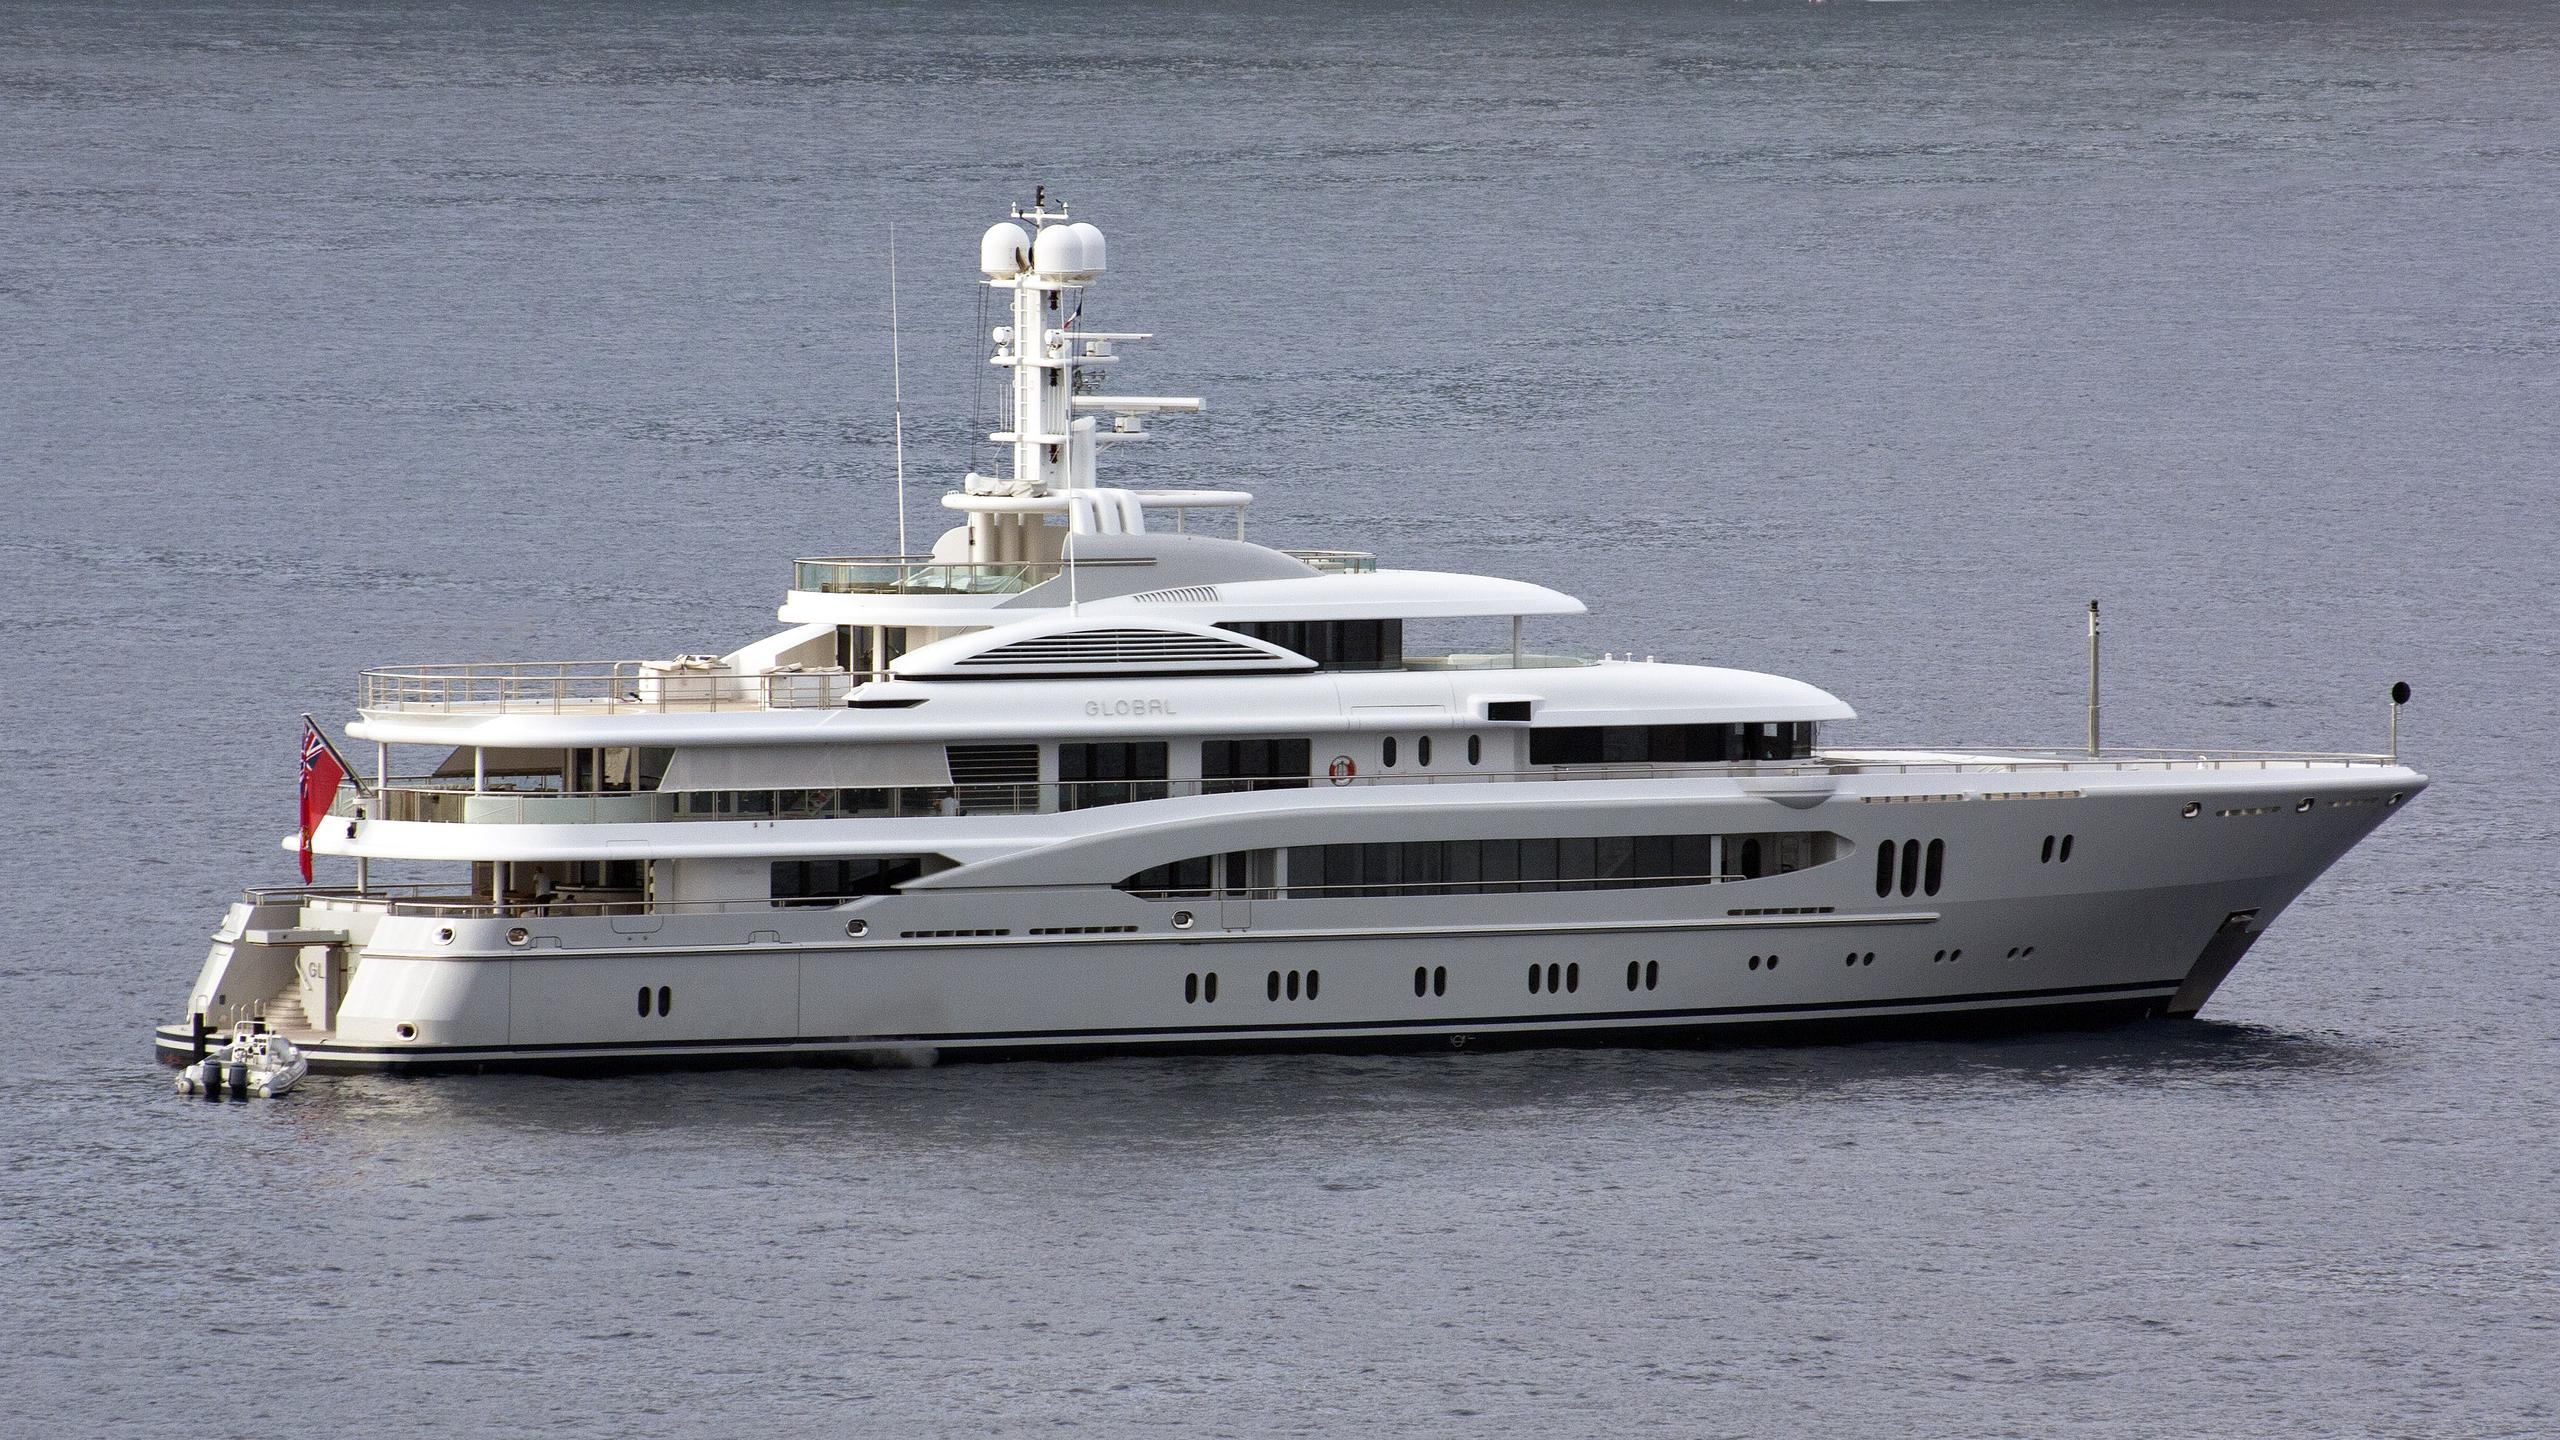 global kismet motor yacht lurssen 2007 74m profile after her first refit